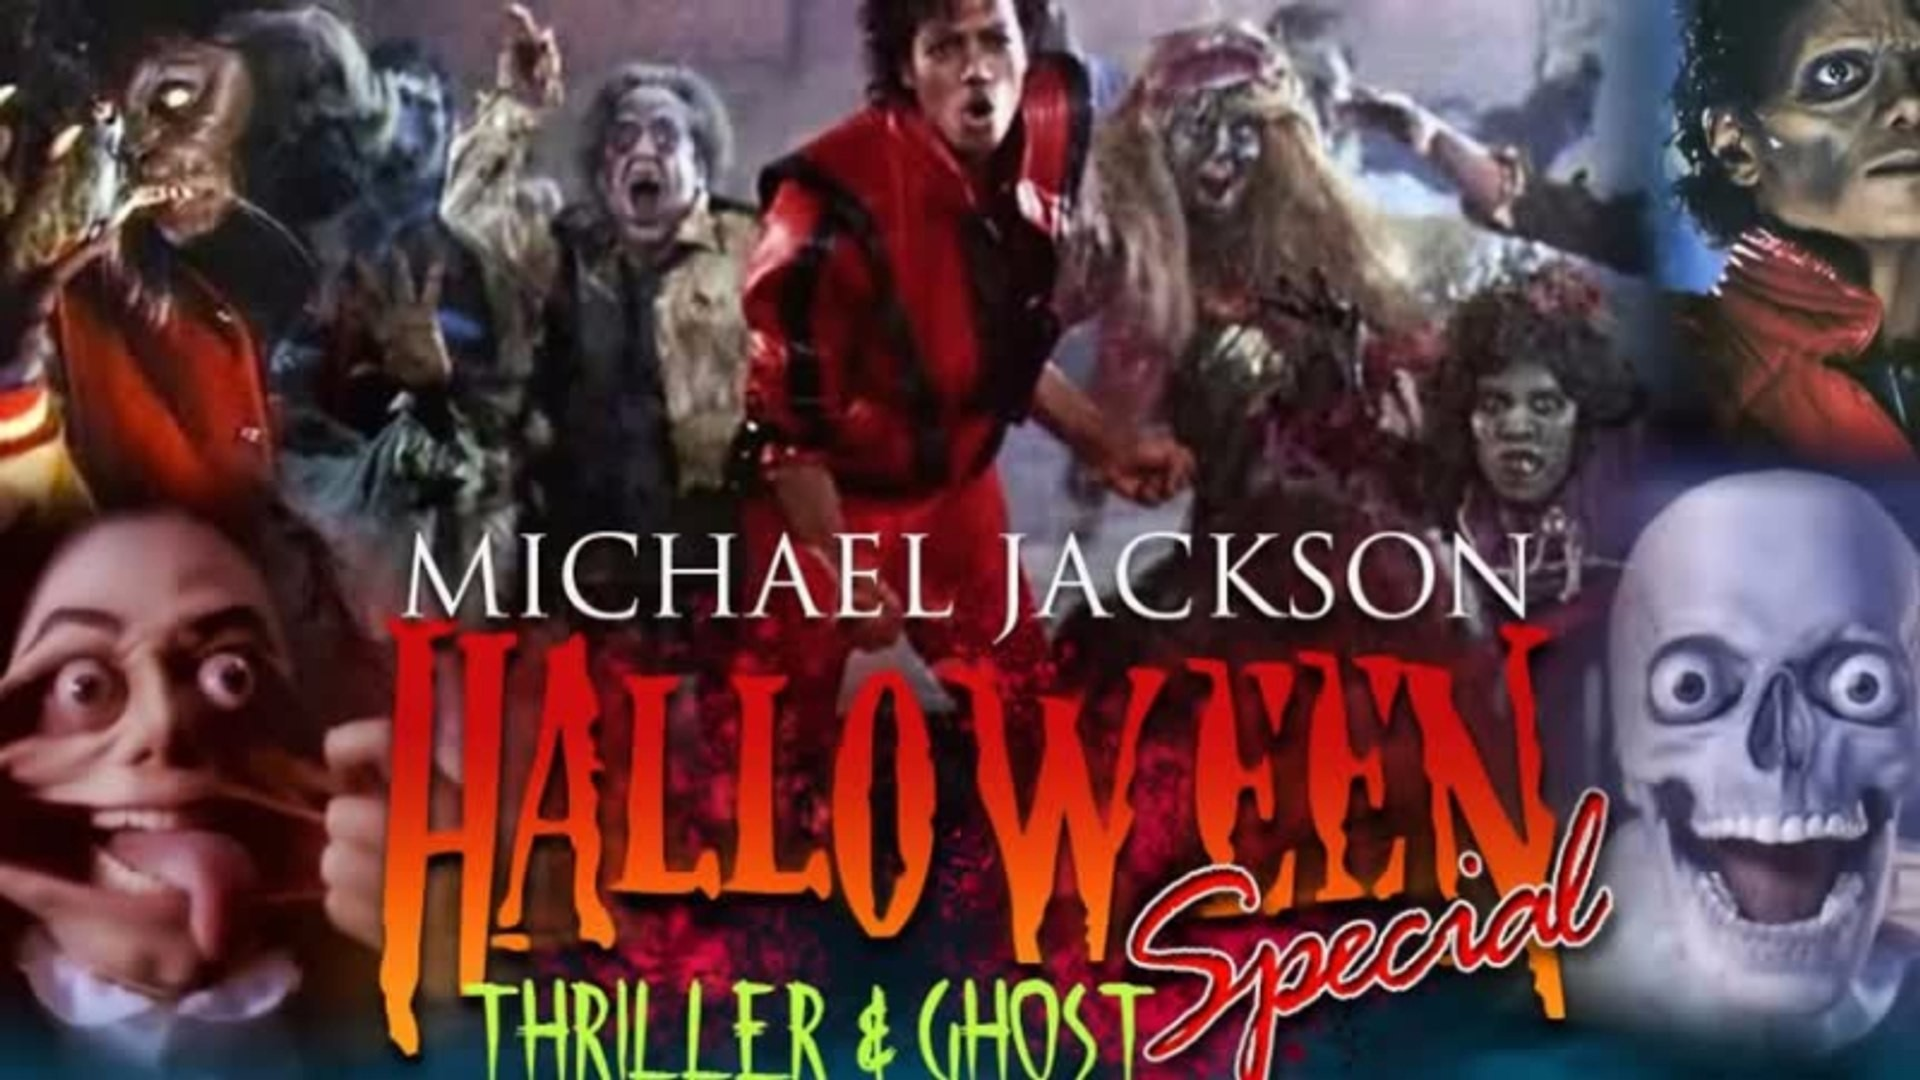 1920x1080 BEST HALLOWEEN SONG EVER- MICHAEL JACKSON THRILLER.mp4 - video dailymotion